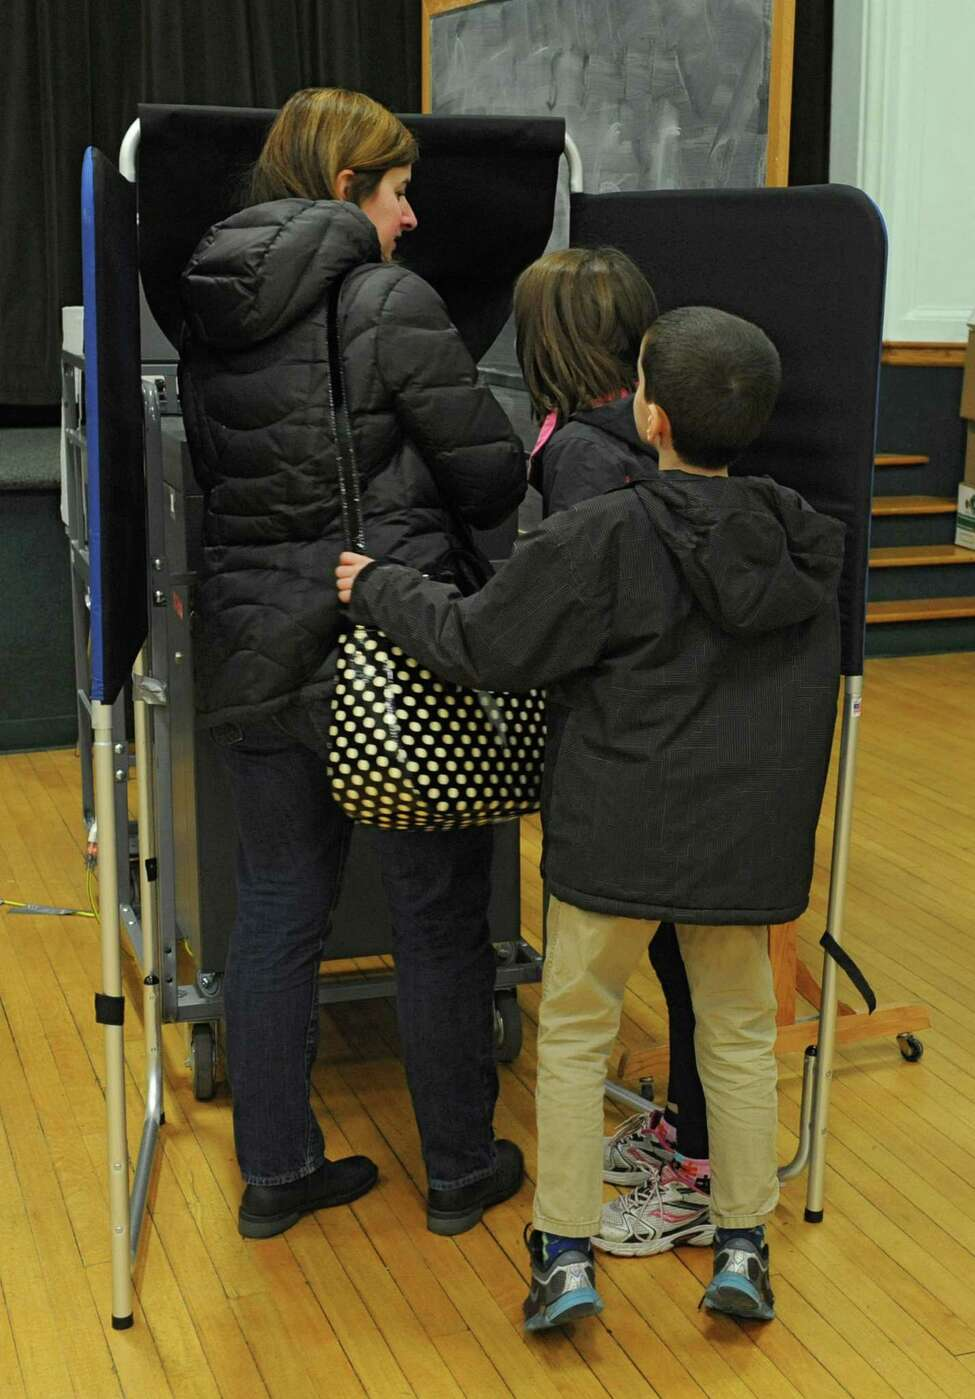 Carol Roeder of Delmar votes while her two children Gillian, 11, center, and Griffin, 9, watch at Bethlehem Town Hall on election day Tuesday, Nov. 5, 2013 in Delmar, N.Y. (Lori Van Buren / Times Union)